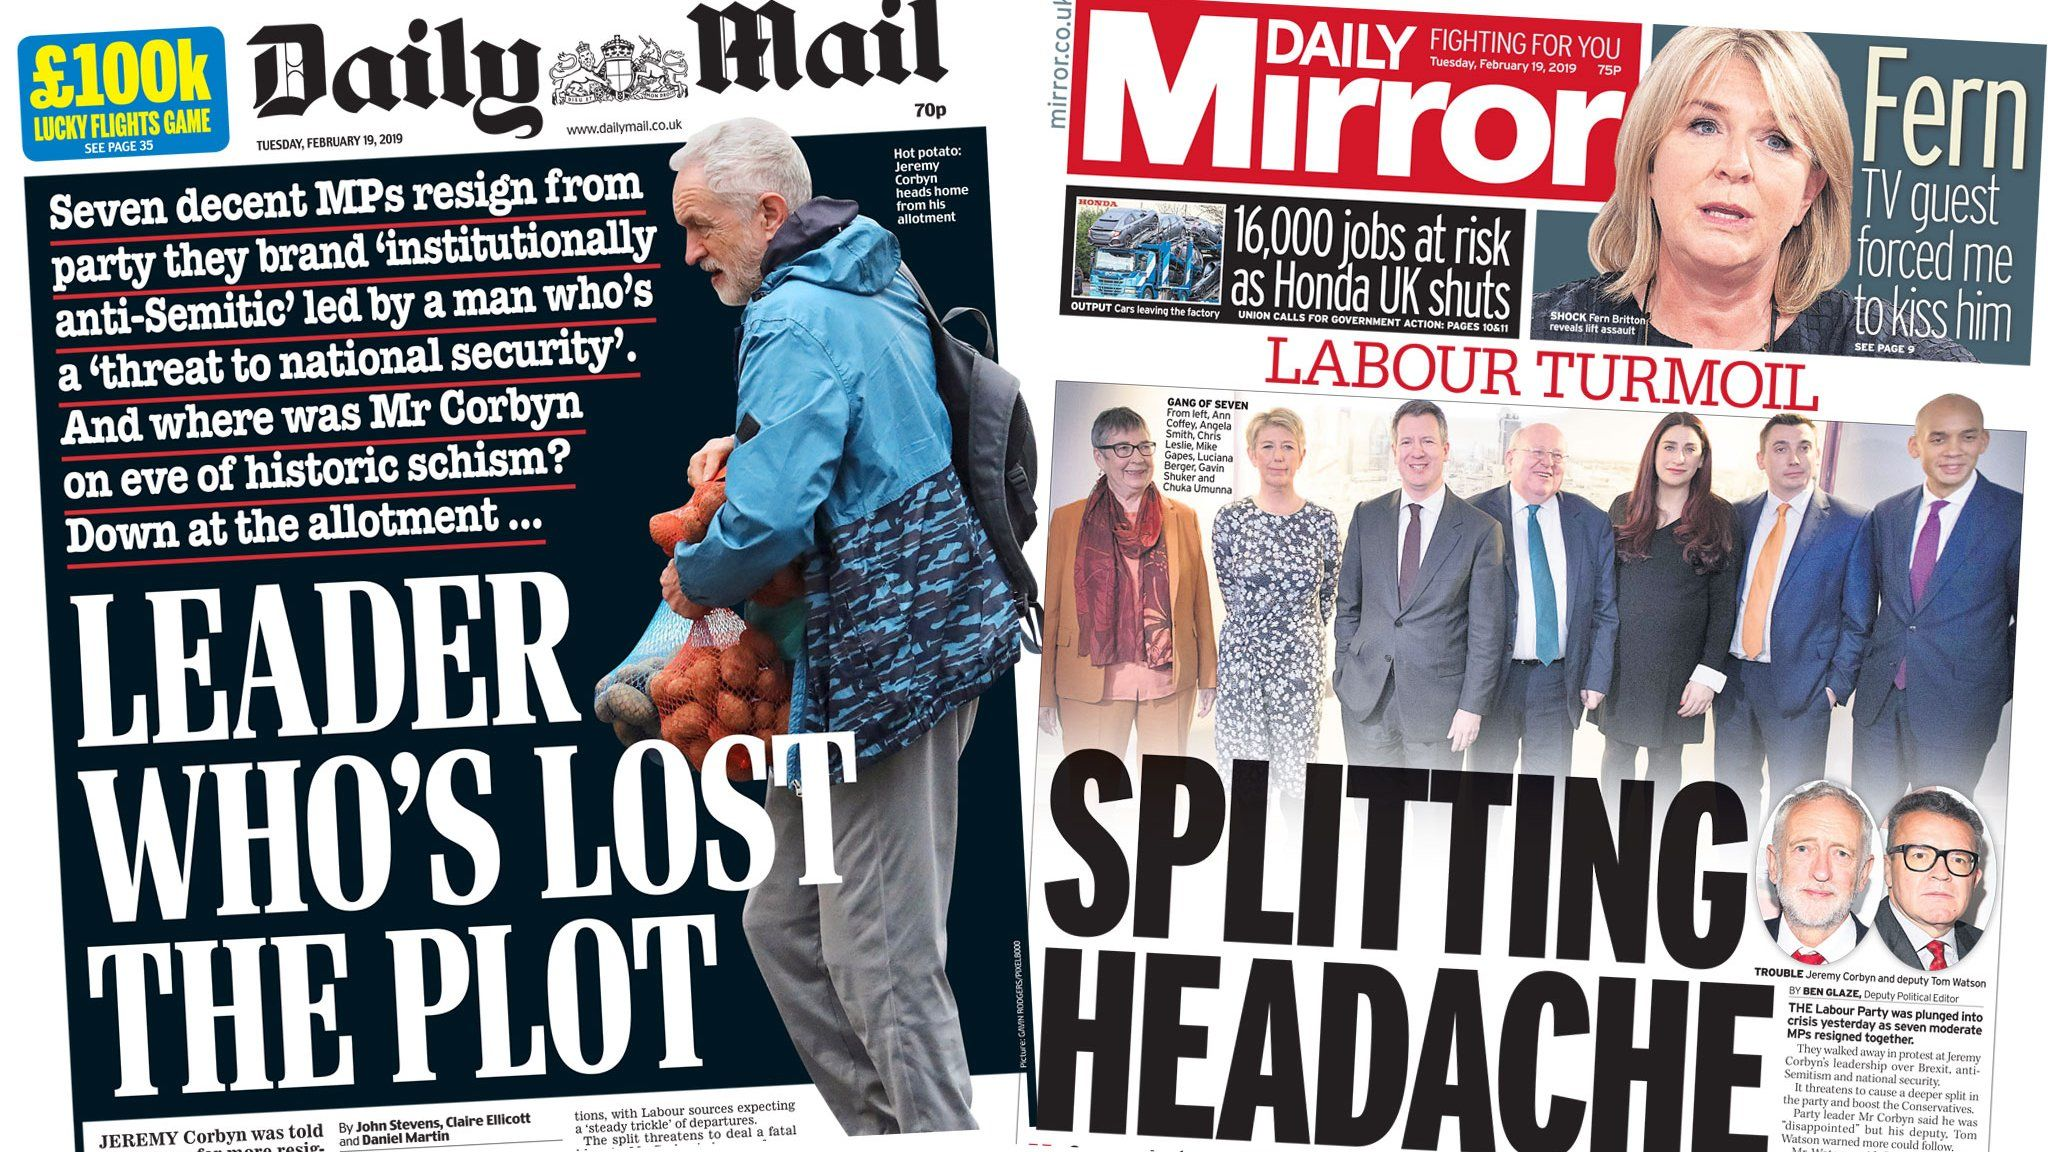 The Daily Mail and the Daily Mirror front pages